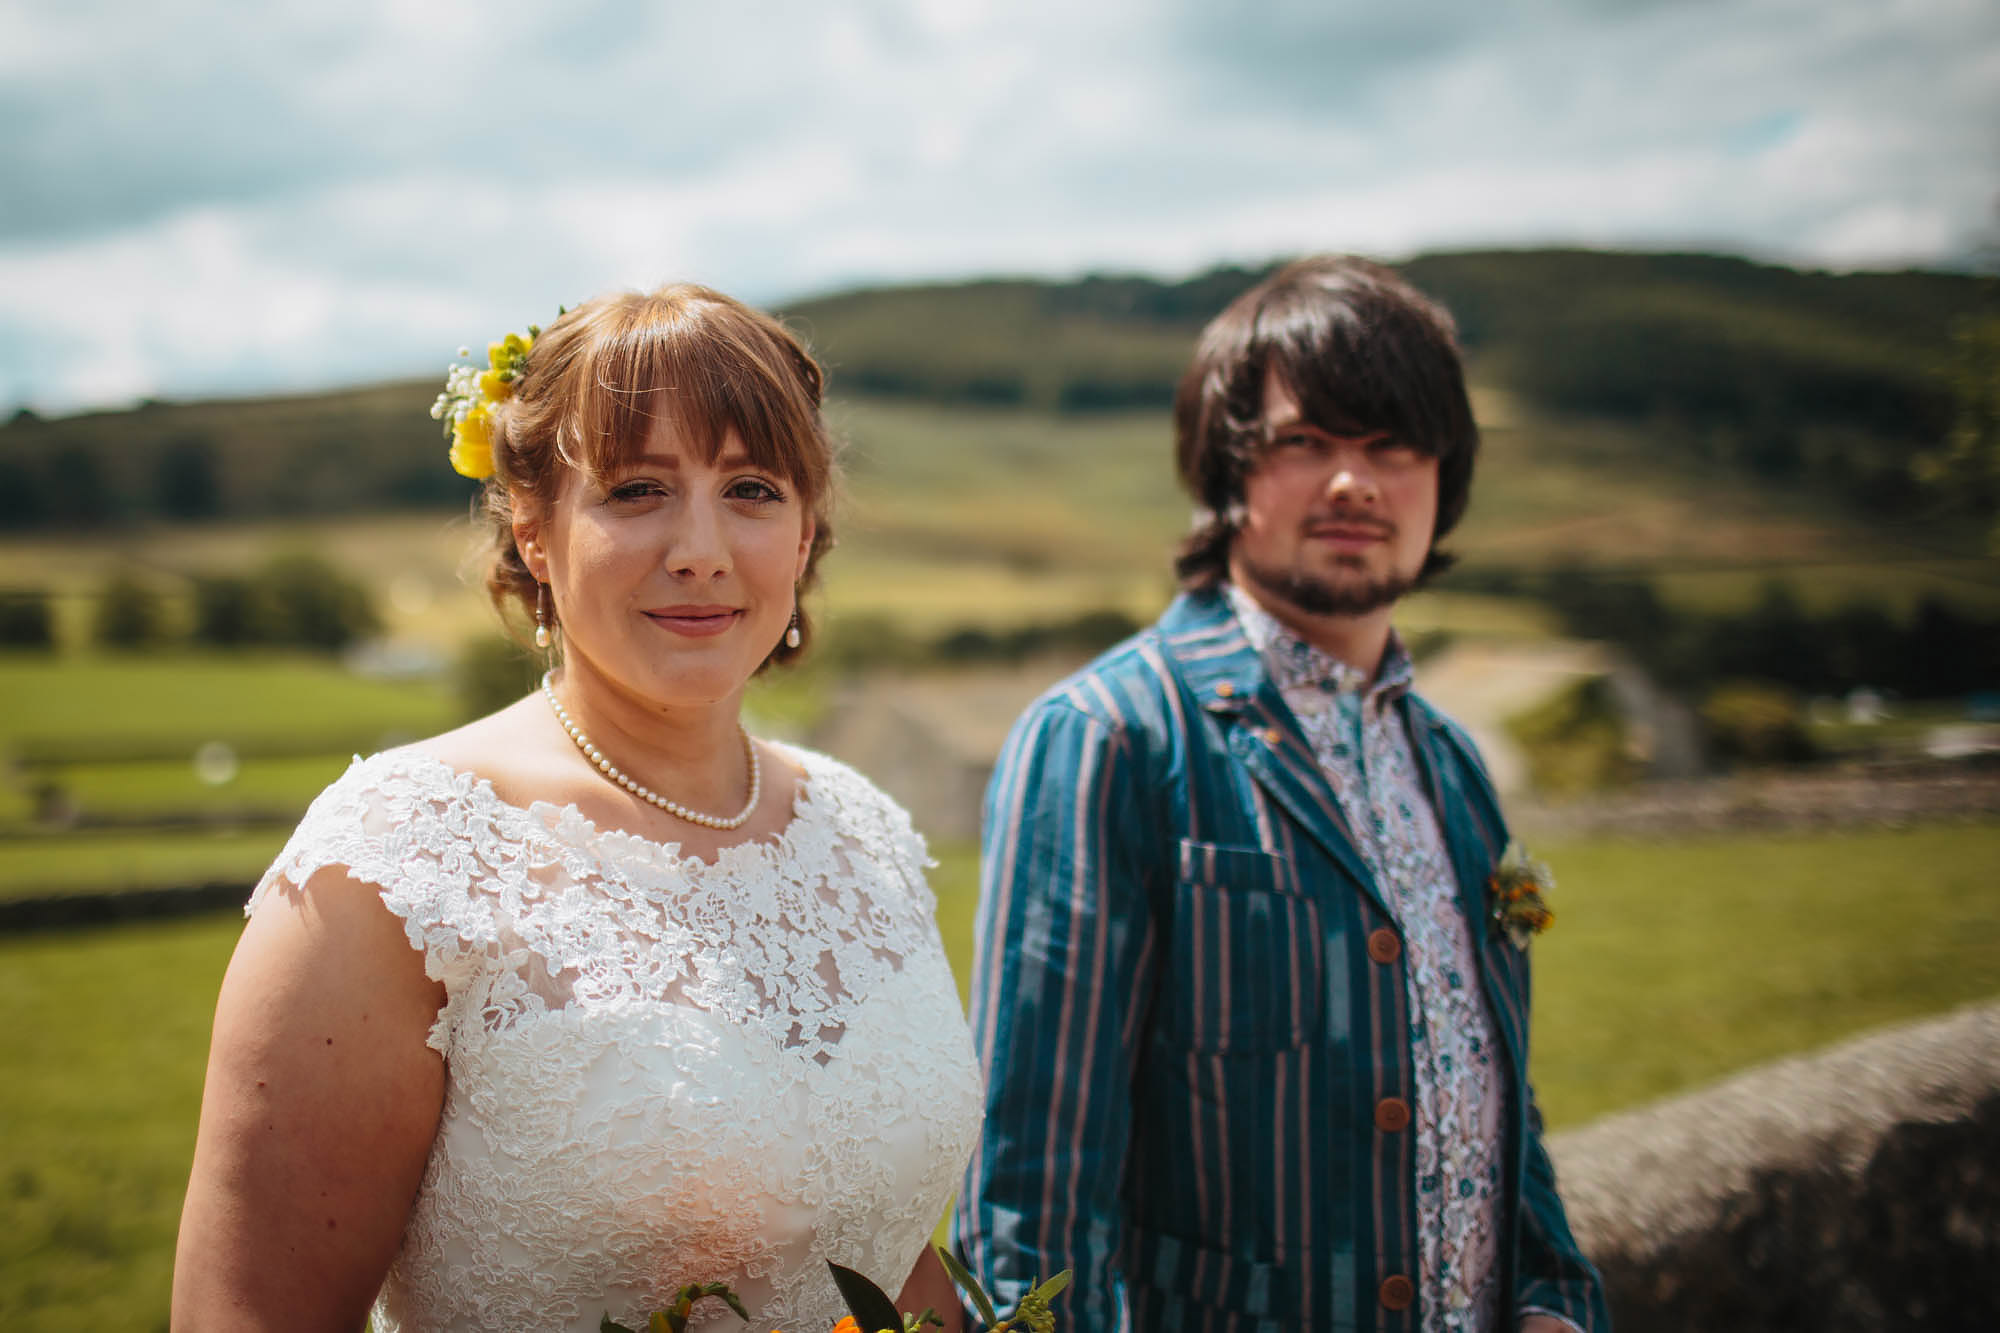 Bride and groom portrait at a Yorkshire Dales wedding